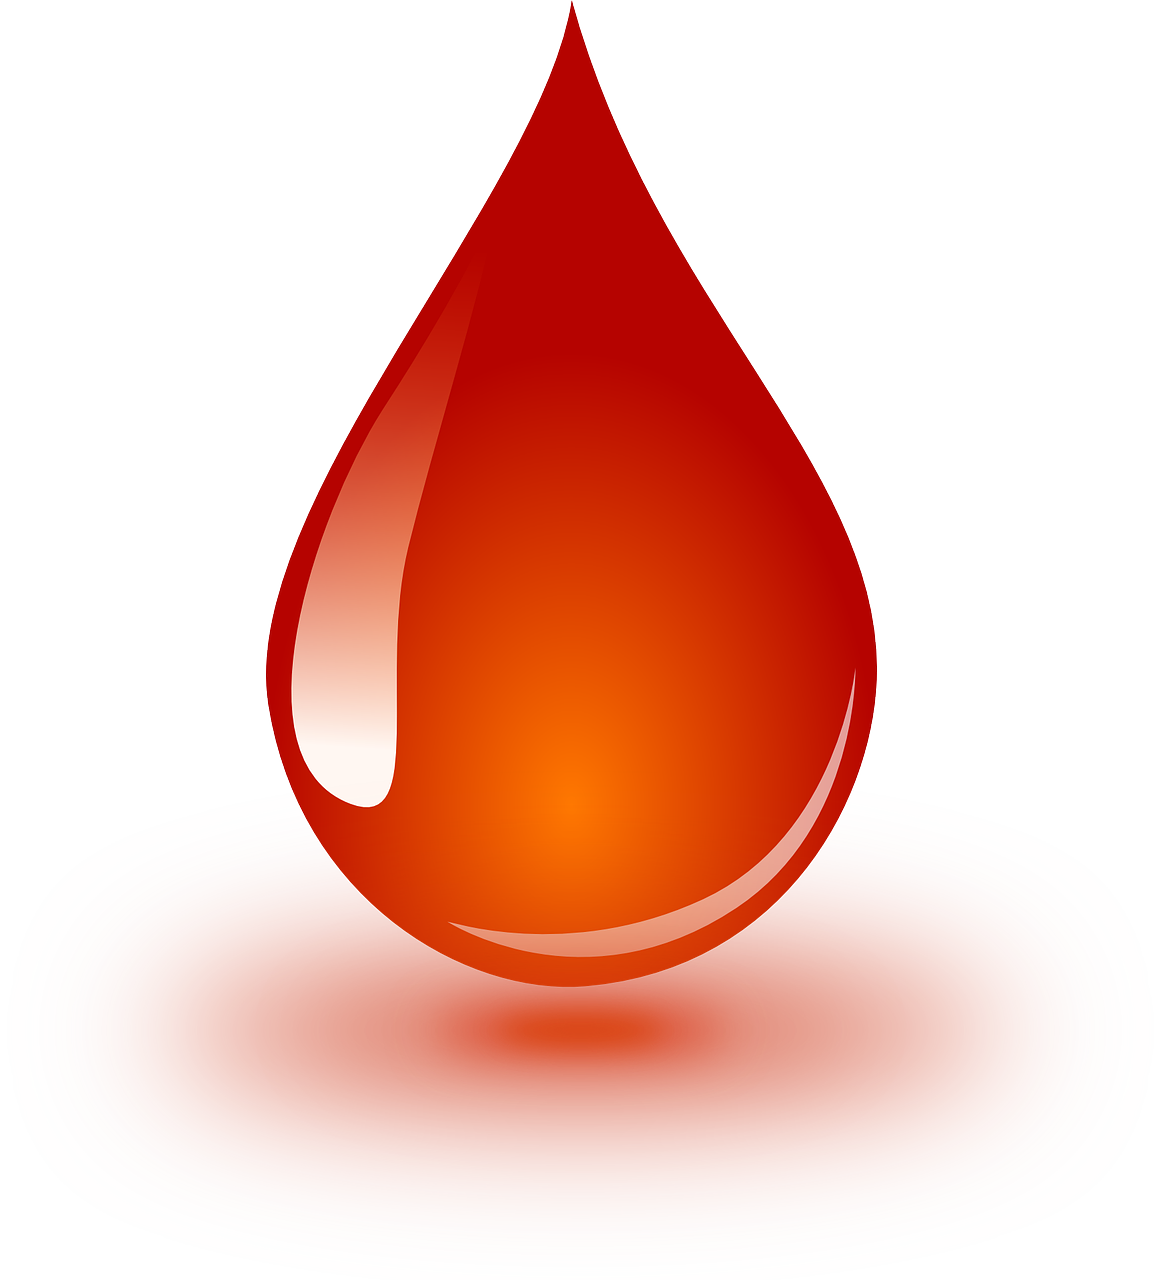 Red blood droplet